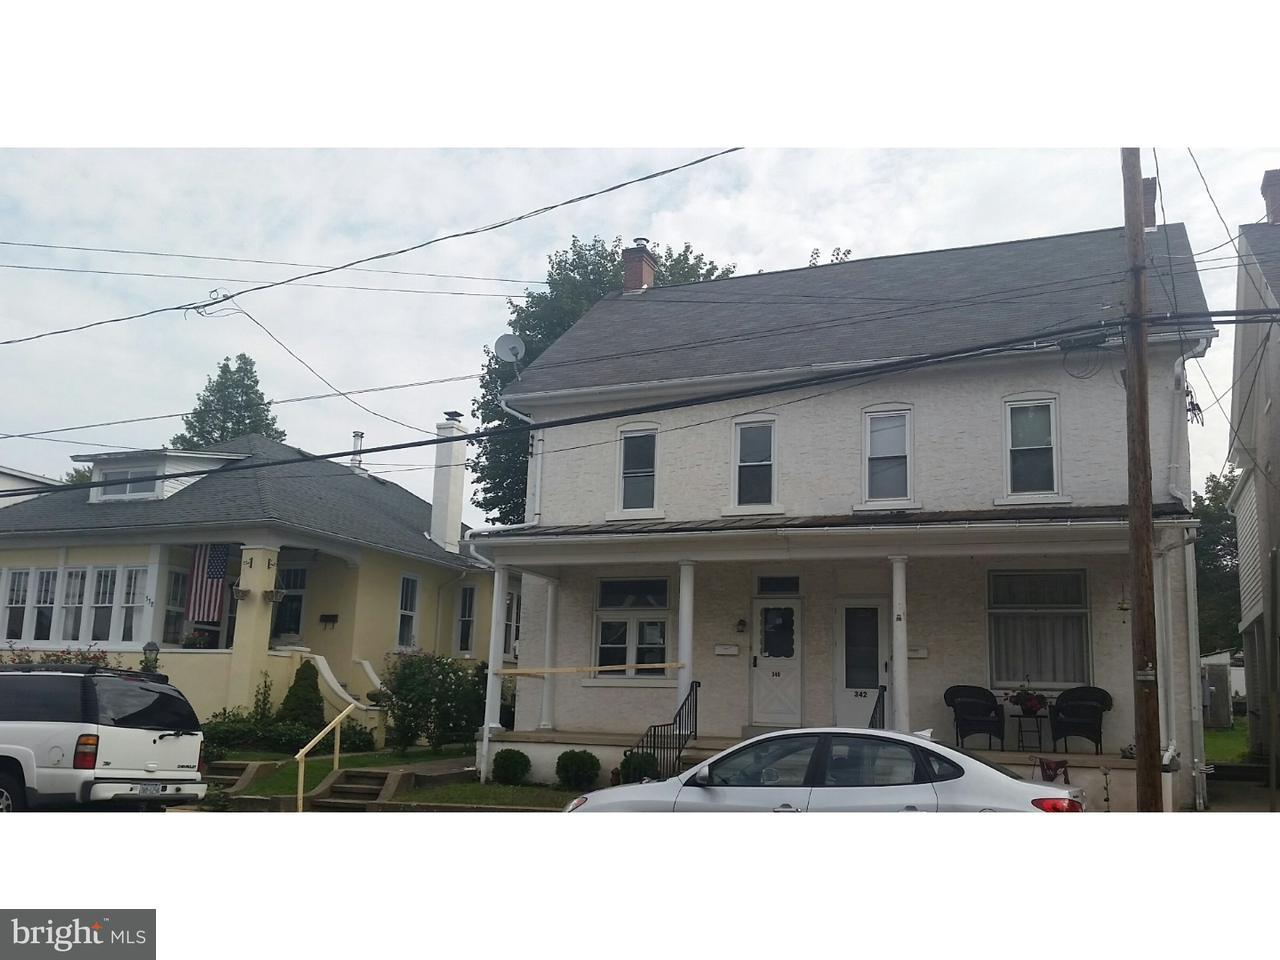 pennsburg dating site Zillow has 26 homes for sale in pennsburg pa view listing photos, review sales history, and use our detailed real estate filters to find the perfect place.